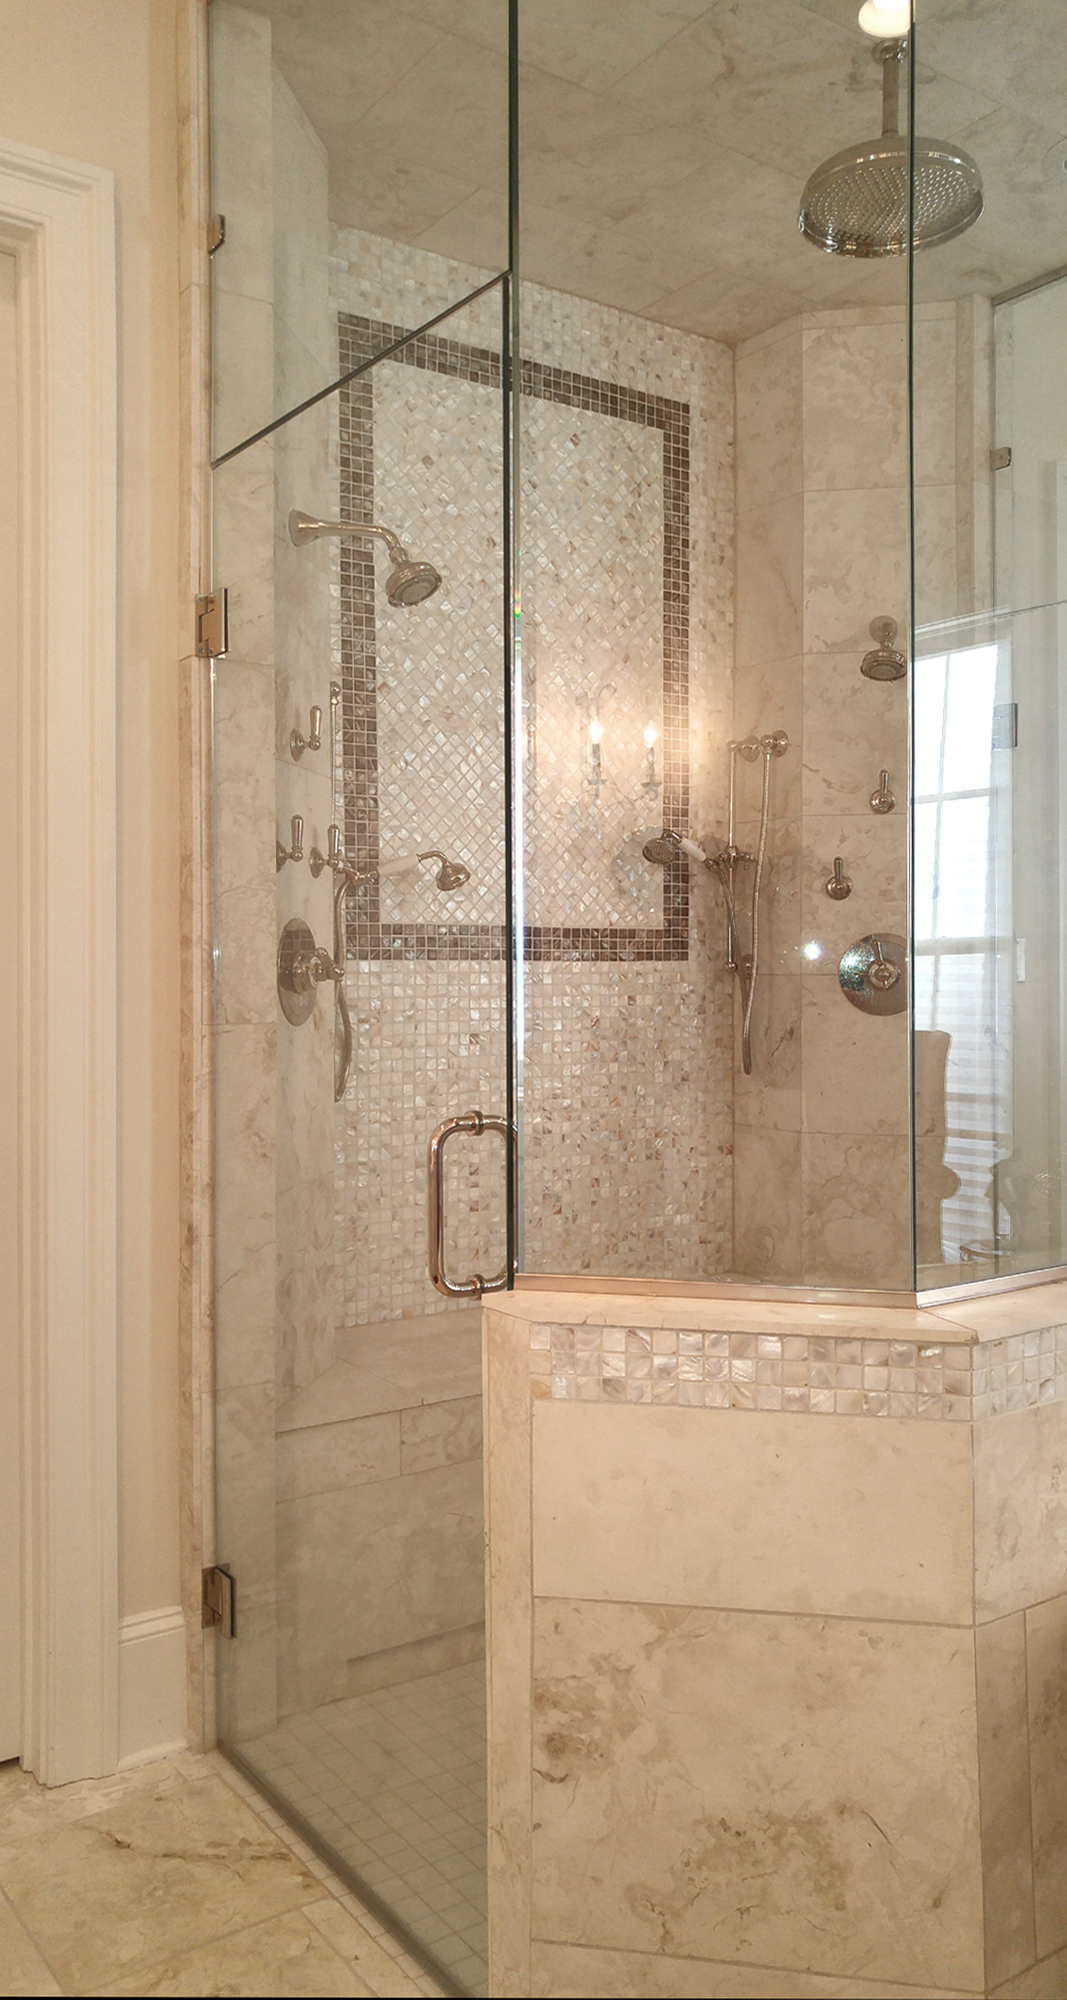 4_Eyre_bath_shower_1067x2000_0806151810.jpg